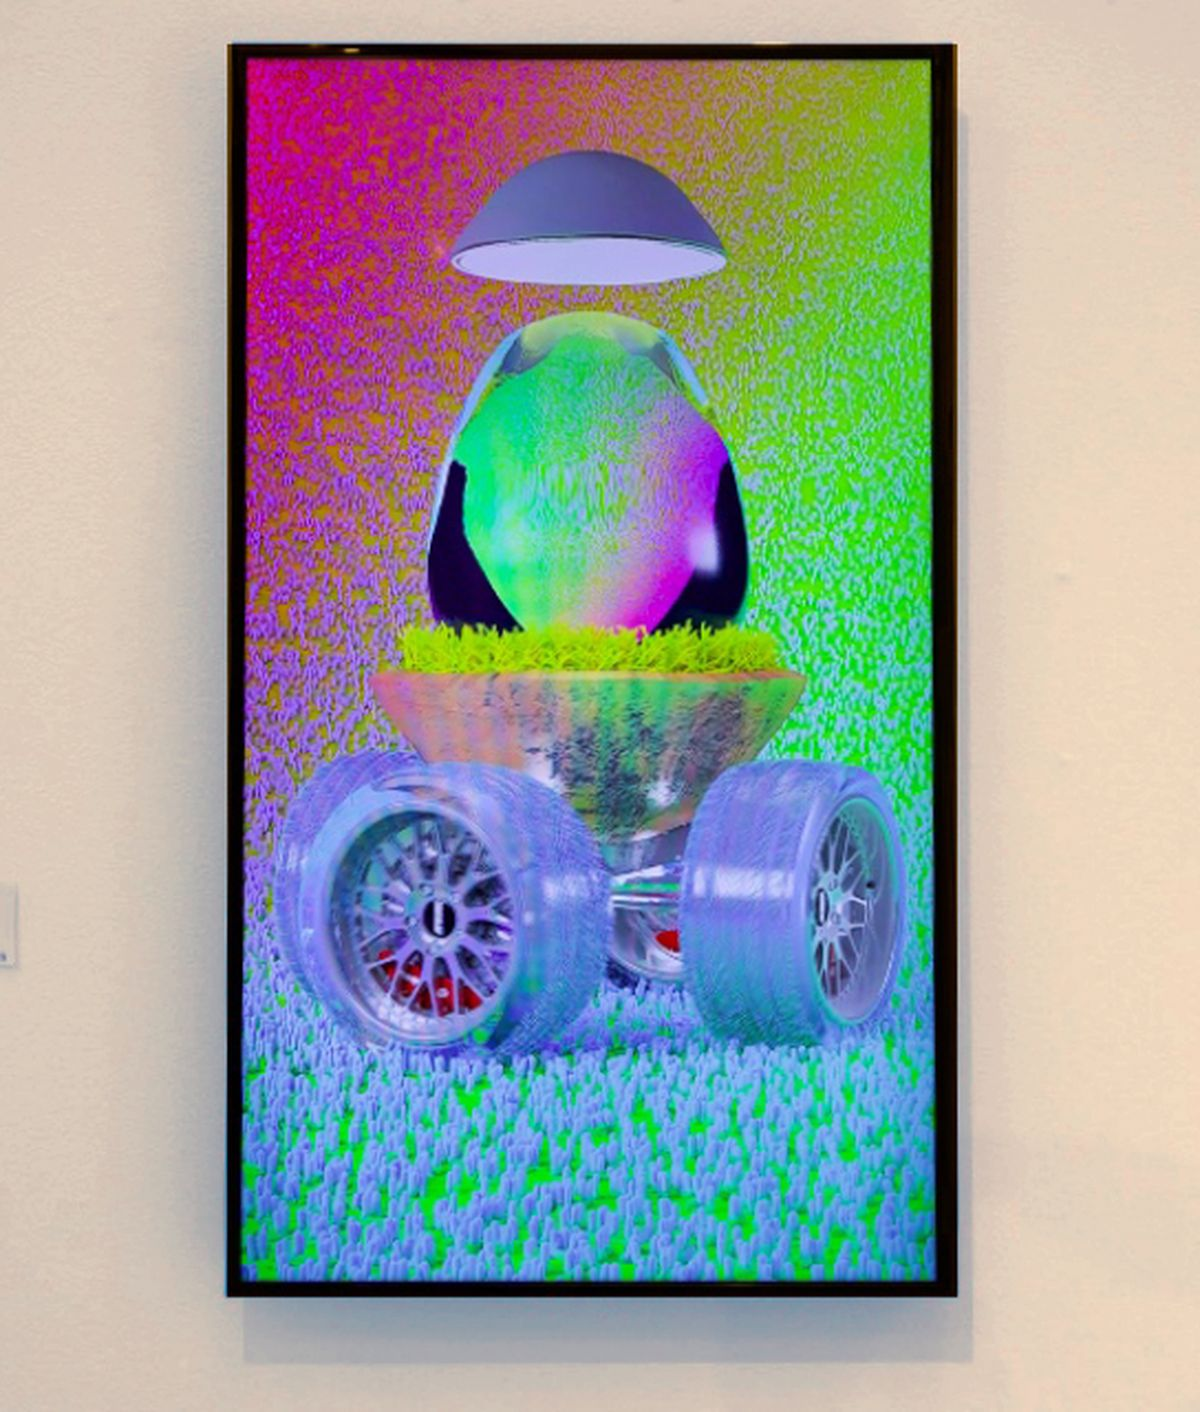 photo of a video screen showing a picture of a colourful egg on wheels